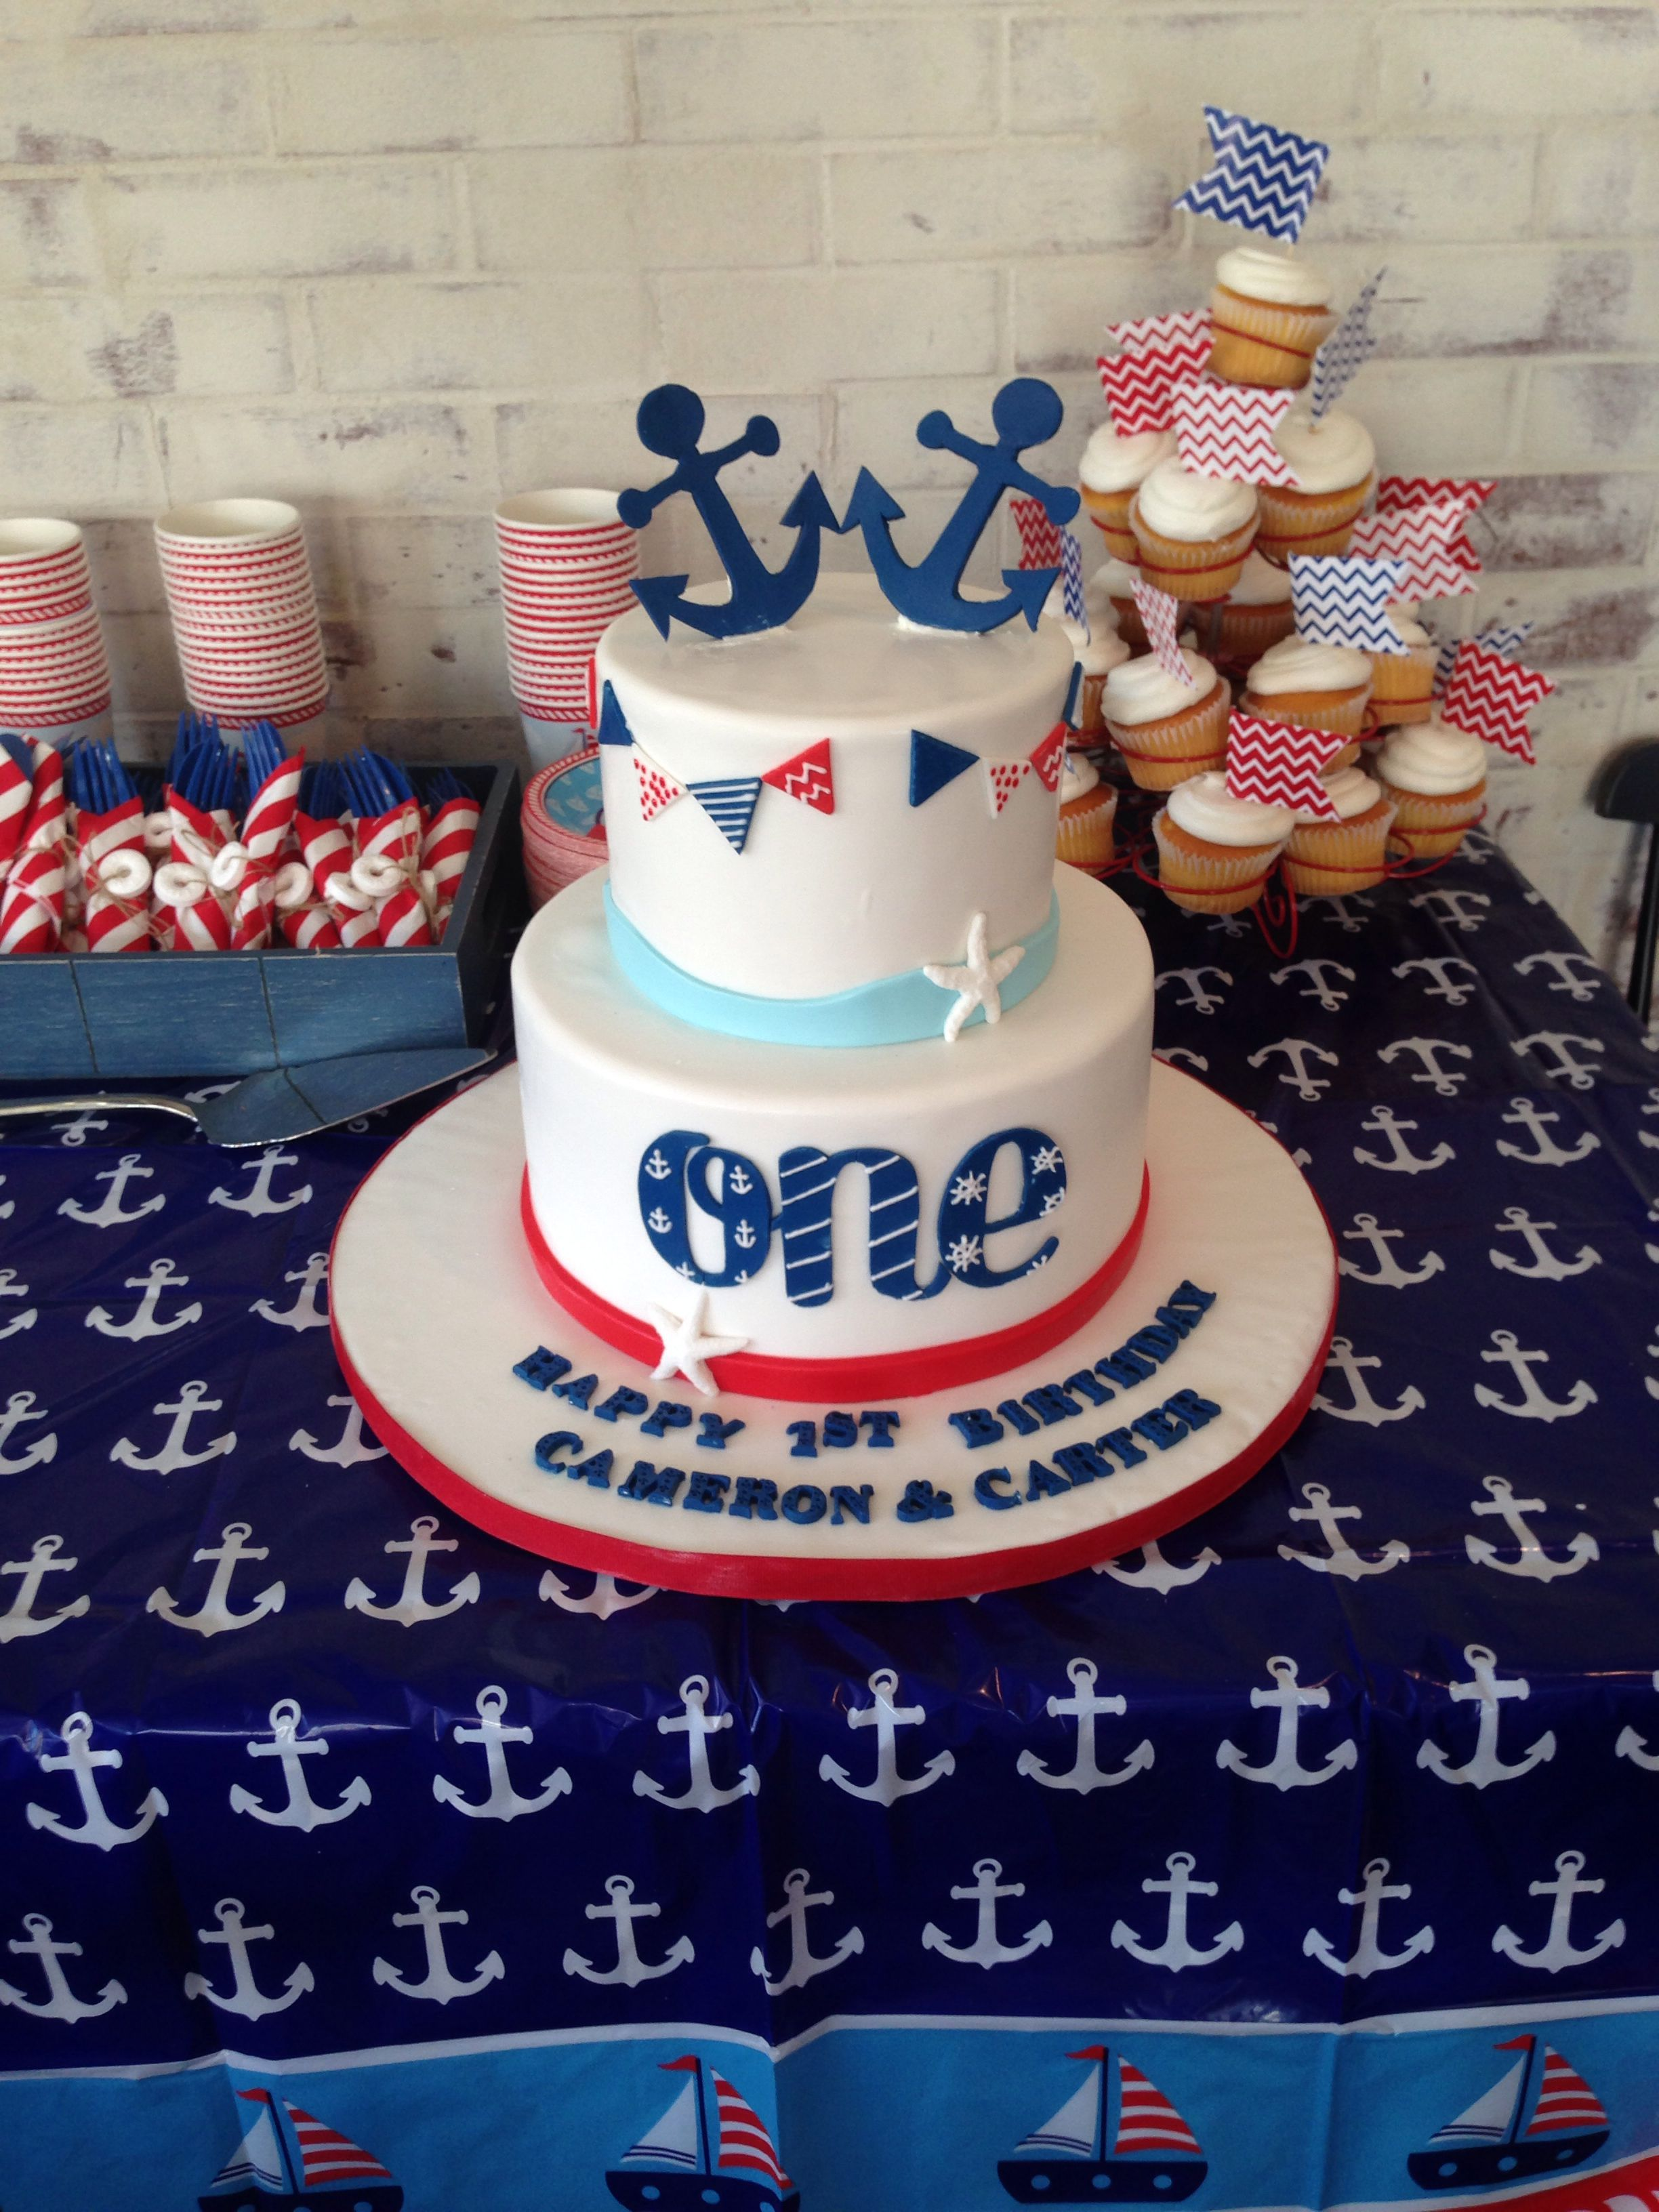 Marvelous Twins First Birthday Cake First Birthday Party Sailor Theme Personalised Birthday Cards Sponlily Jamesorg